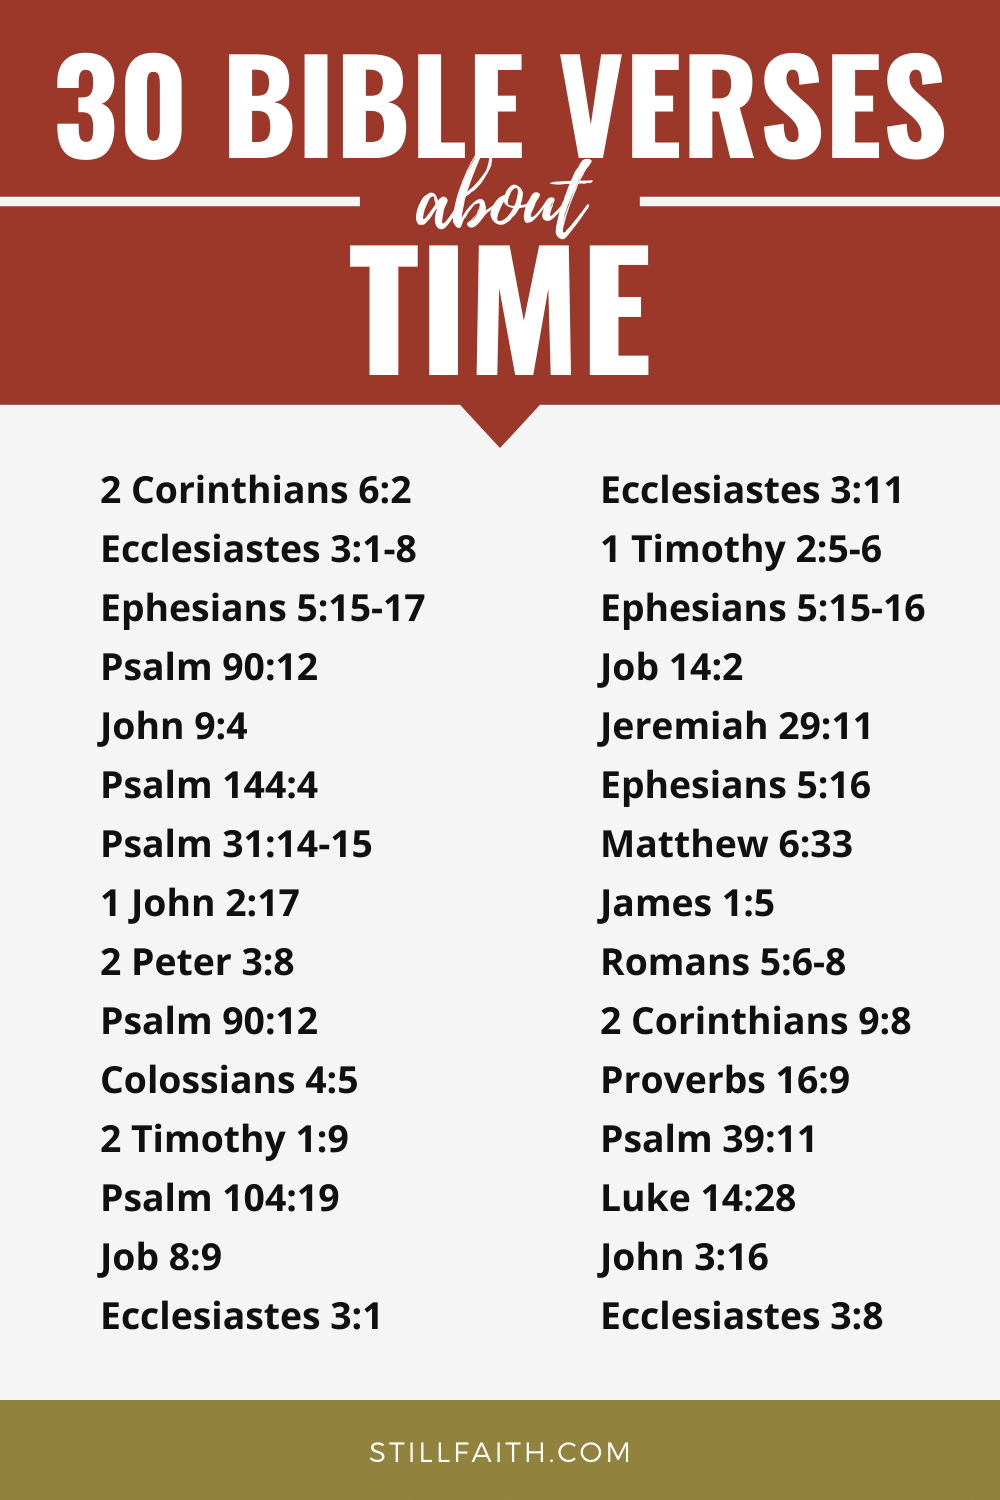 194 Bible Verses about Time